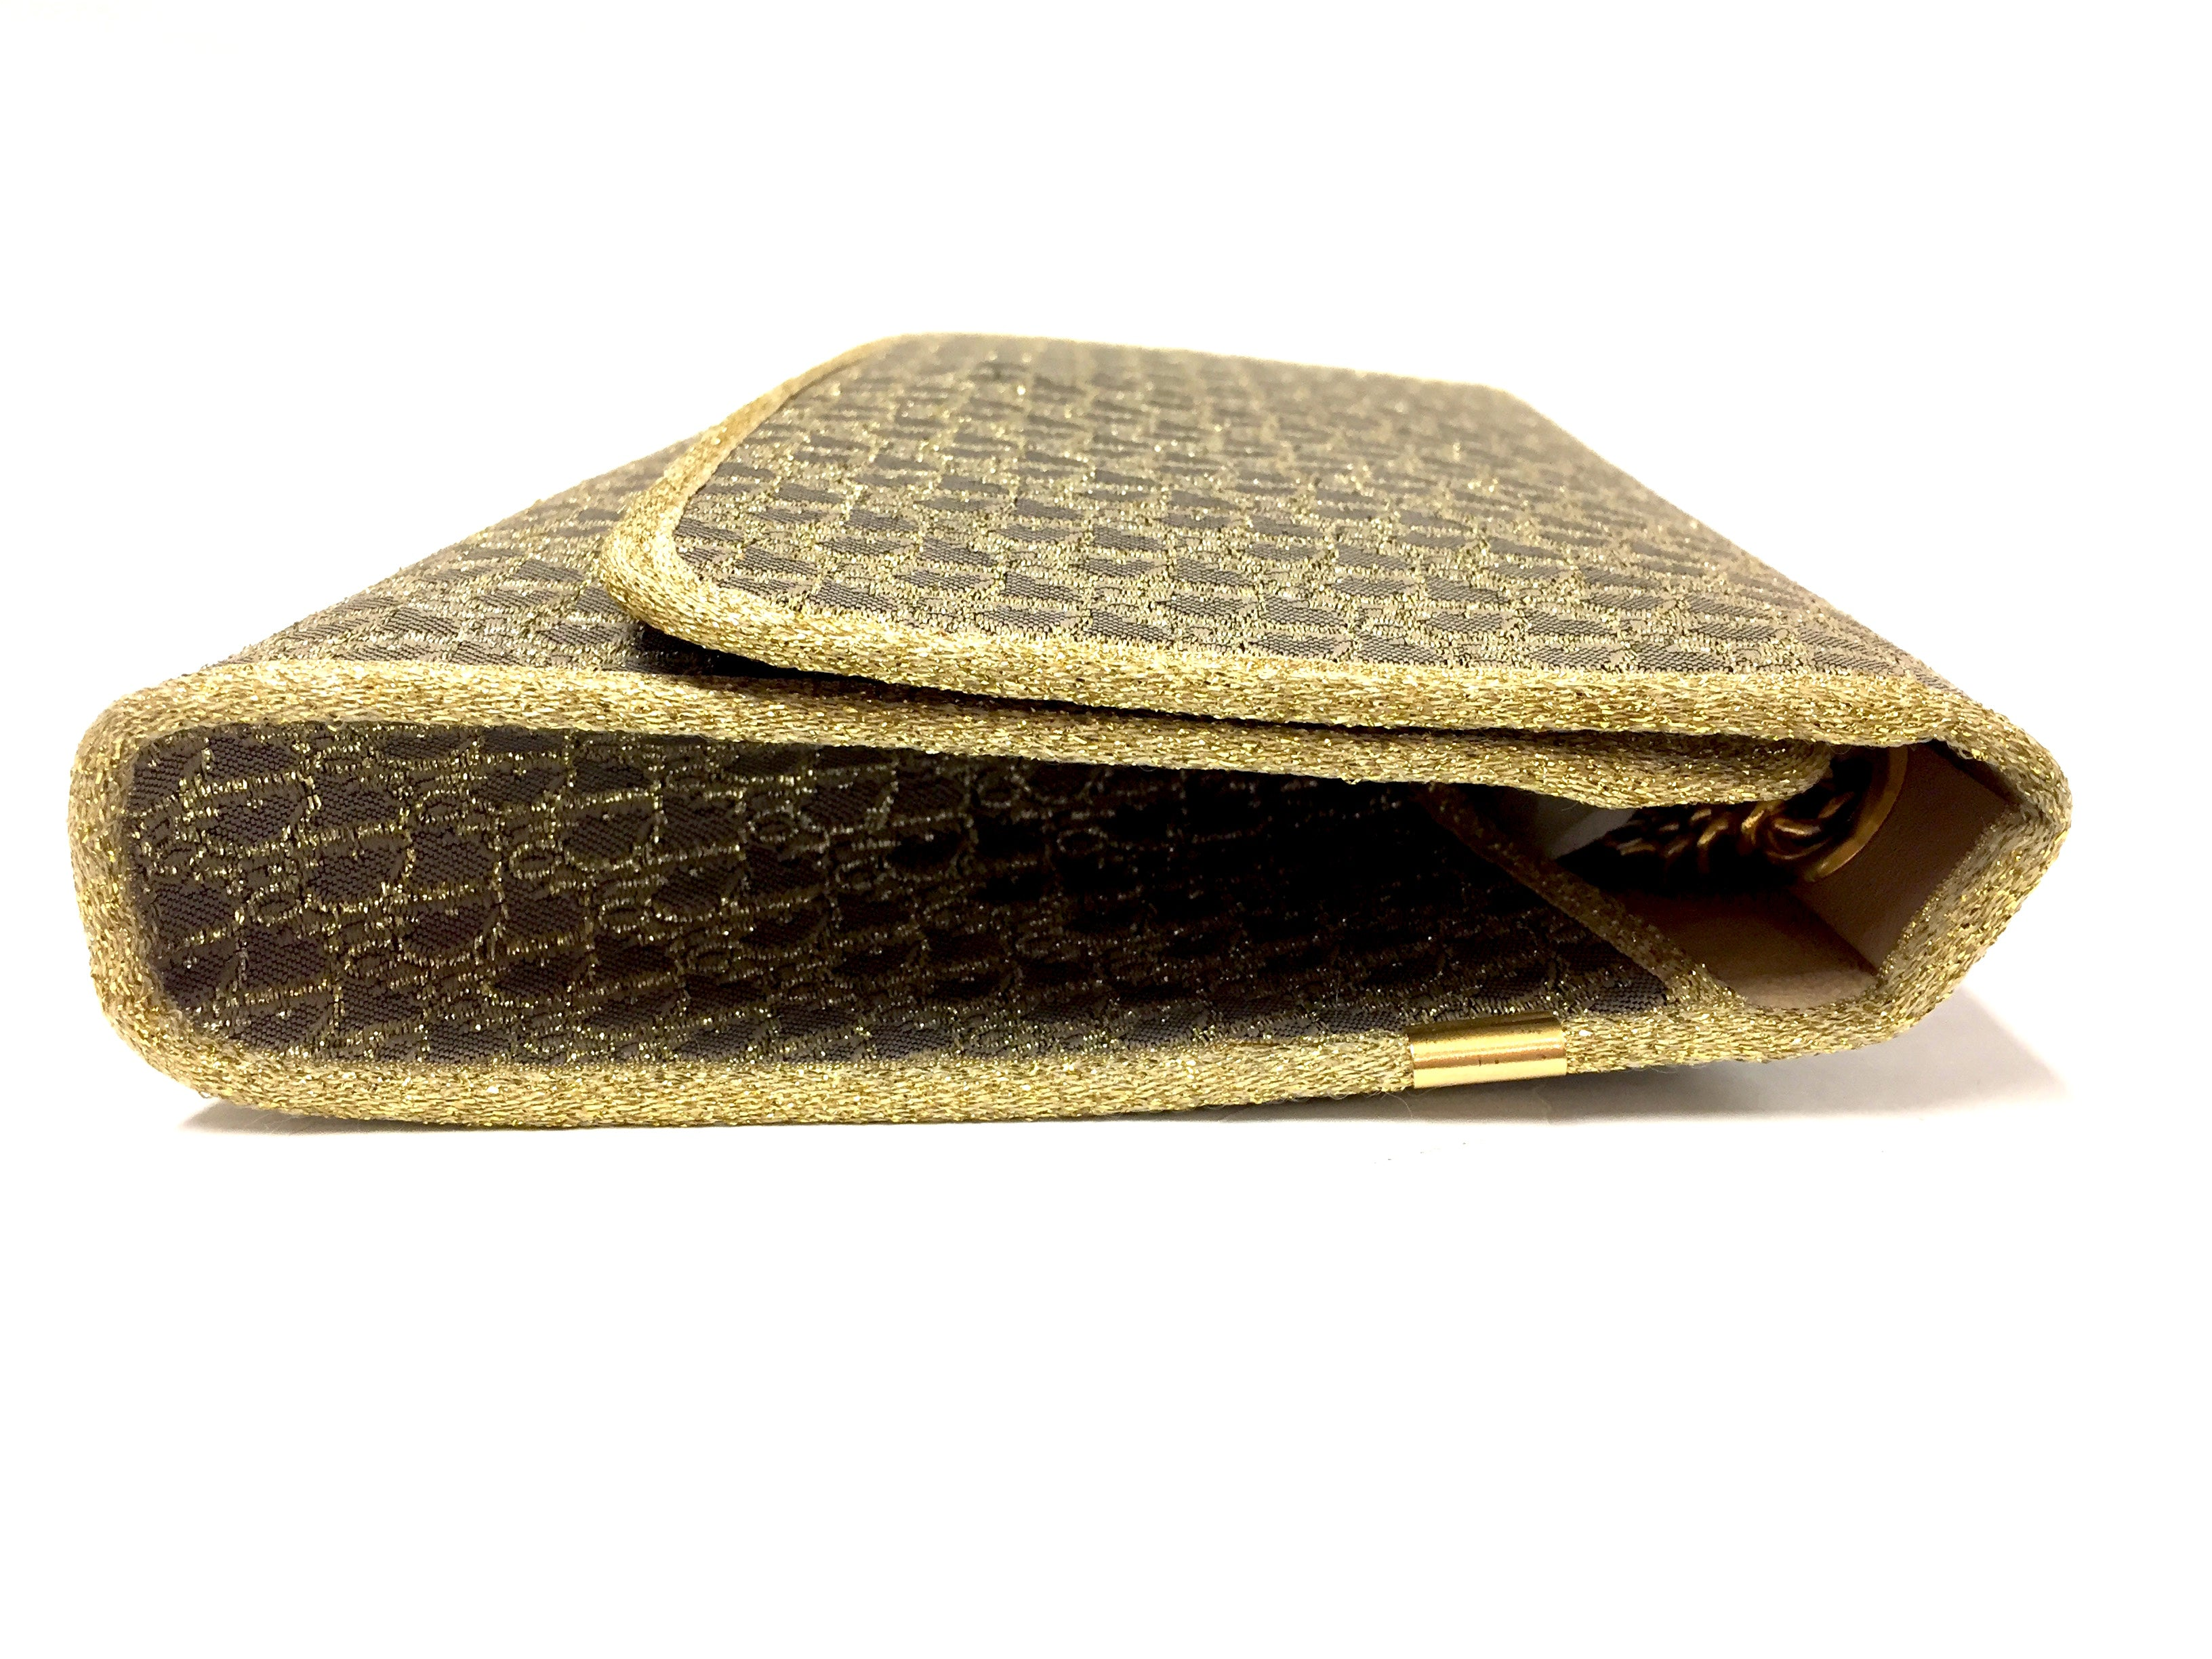 f075b34f3d ... bisbiz.com CHRISTIAN DIOR Vintage Taupe/Metallic Gold Logo-Patterned  Fabric Evening Clutch